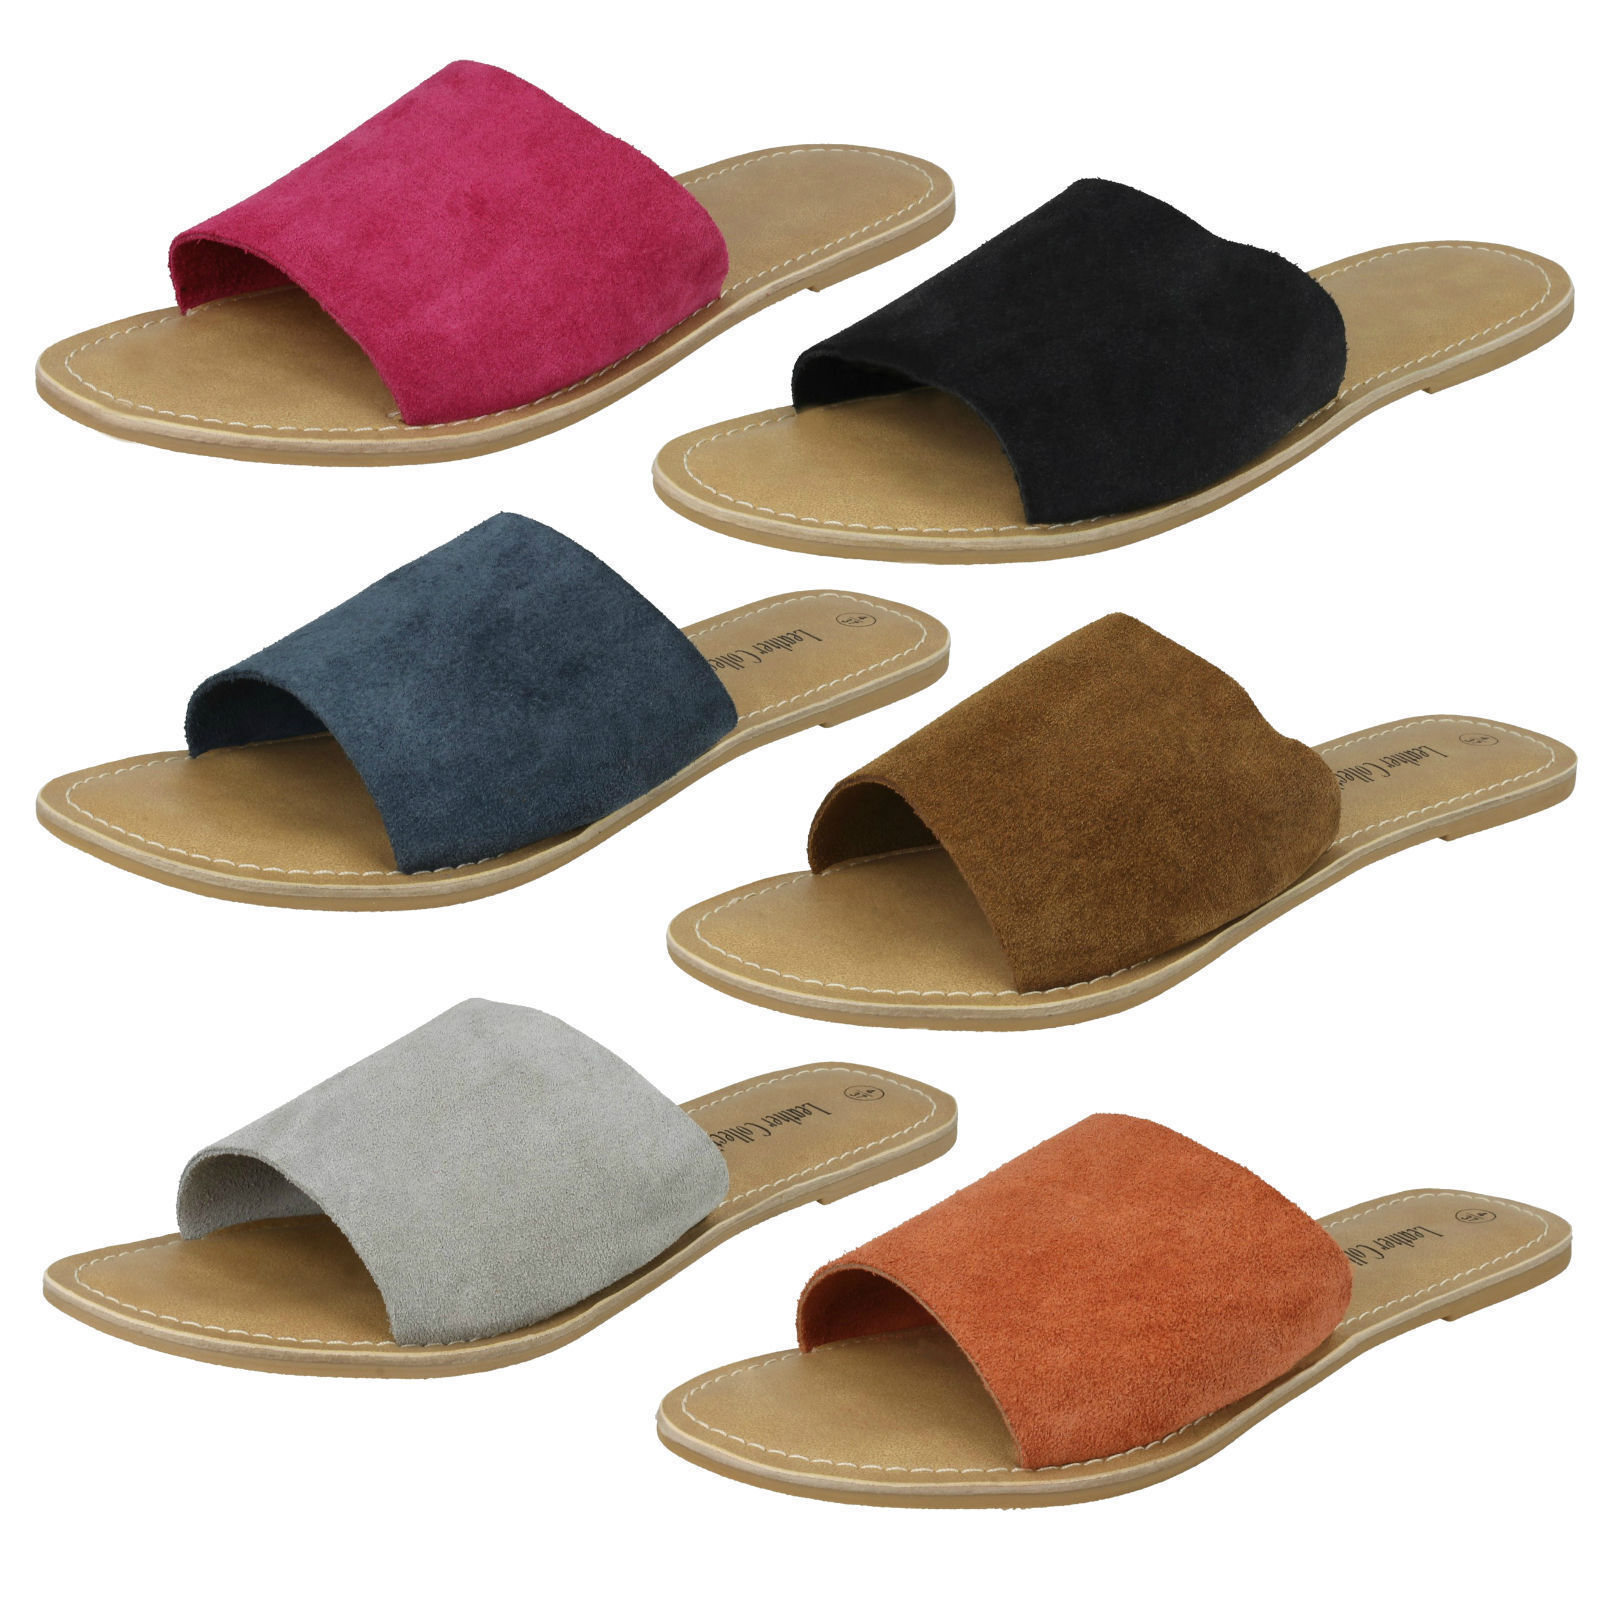 Men/Women Mujer Rebajas Leather Collection Sandalias F00072 Rich design the Pleasant appearance As of the design latest model 470f95